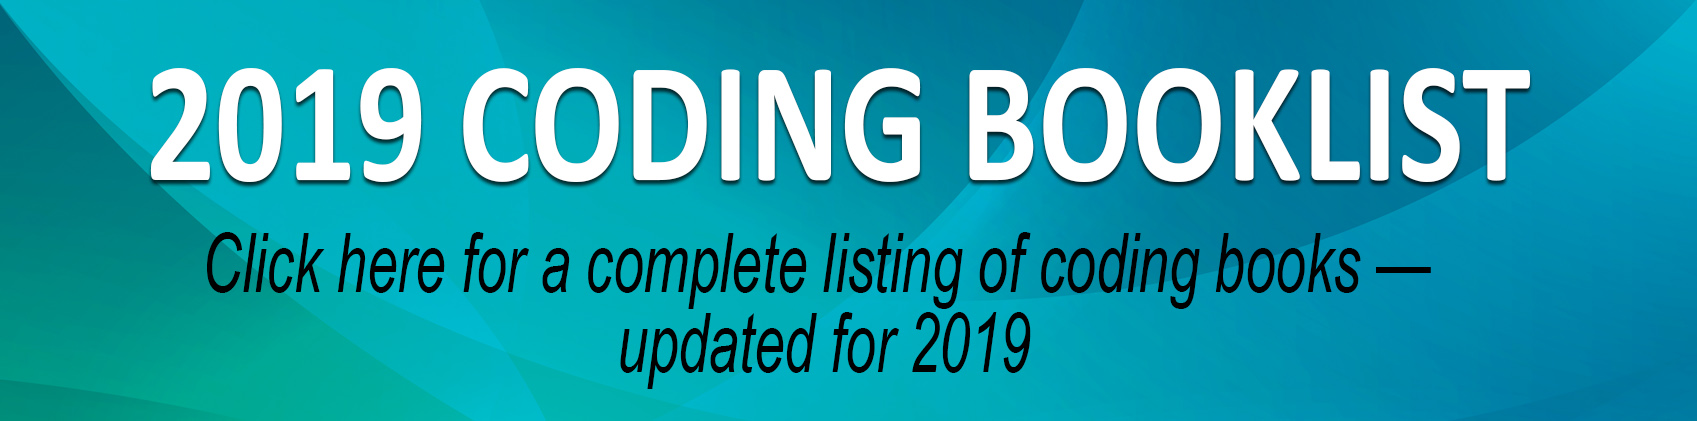 Coding Book List 2019